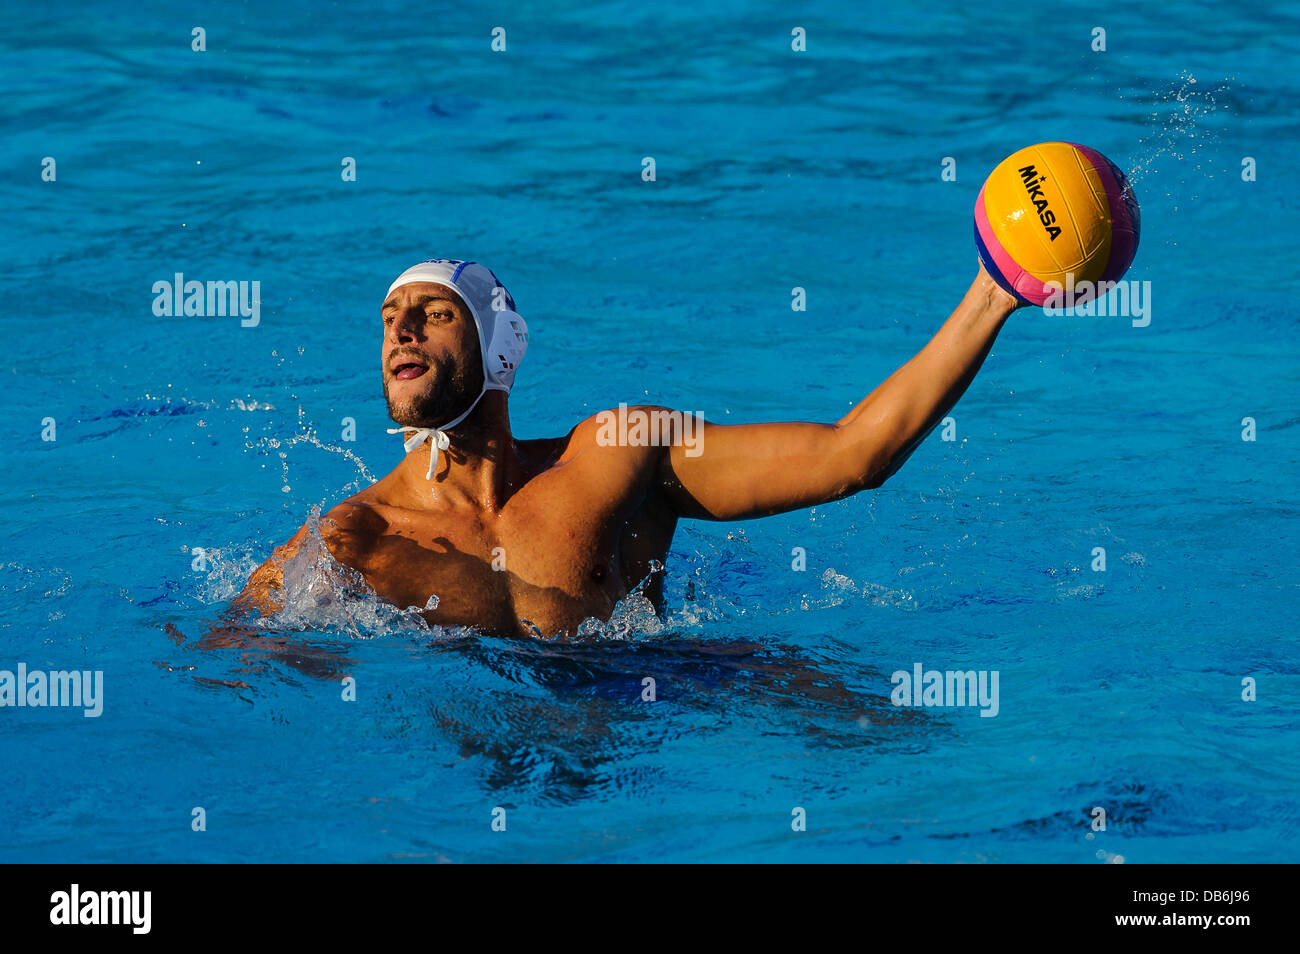 dab1b072e4 Water Polo Cap Stock Photos   Water Polo Cap Stock Images - Page 3 ...